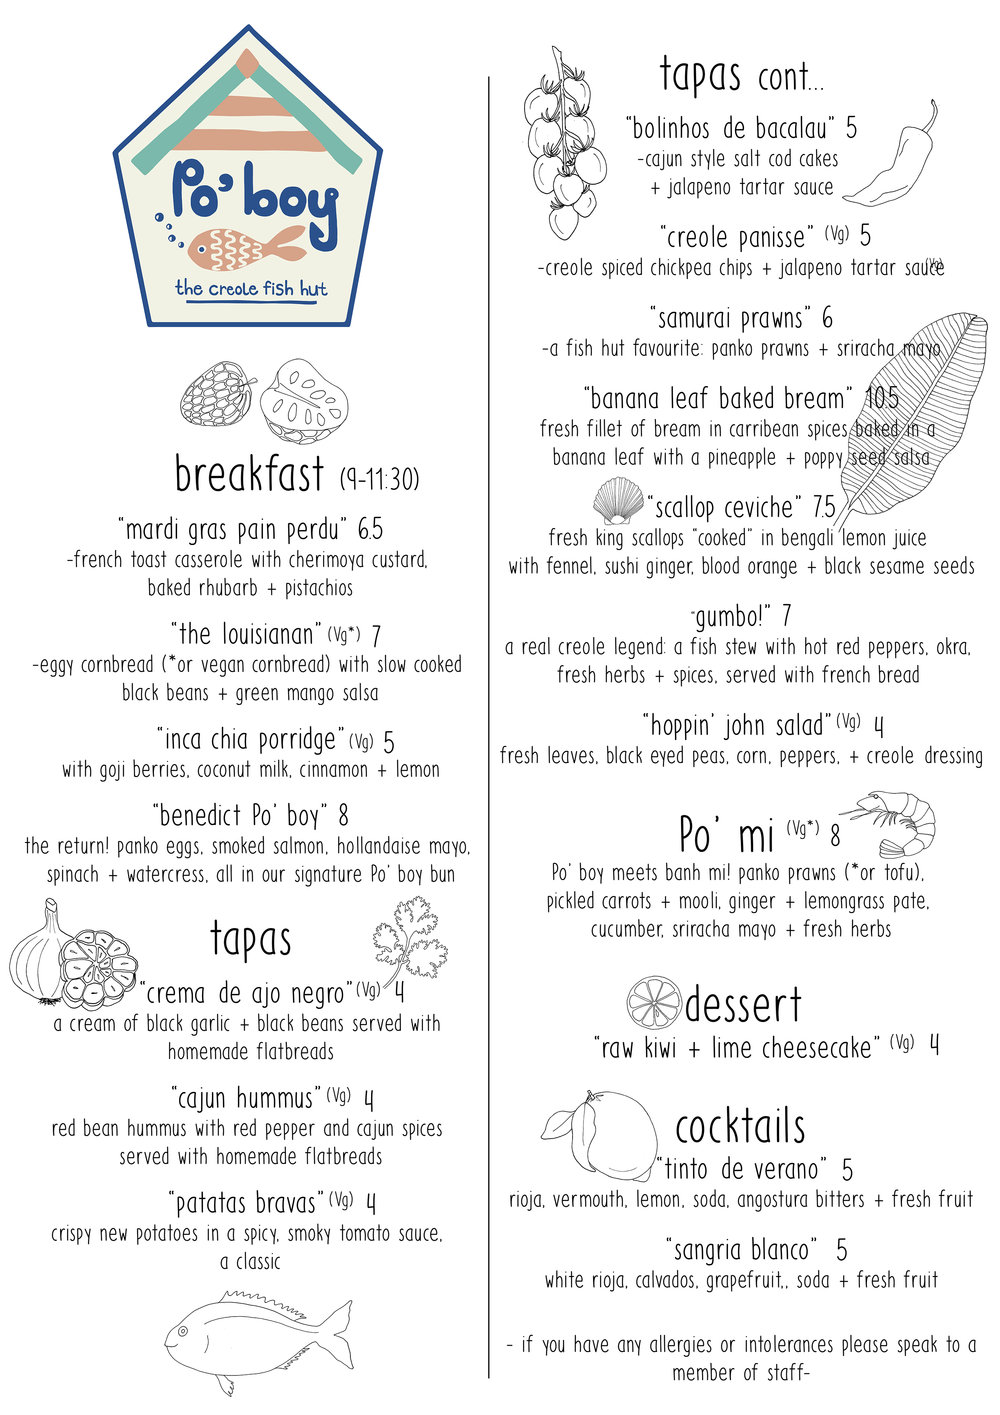 MENU CLIFFS 14 font OK jpeg.jpg